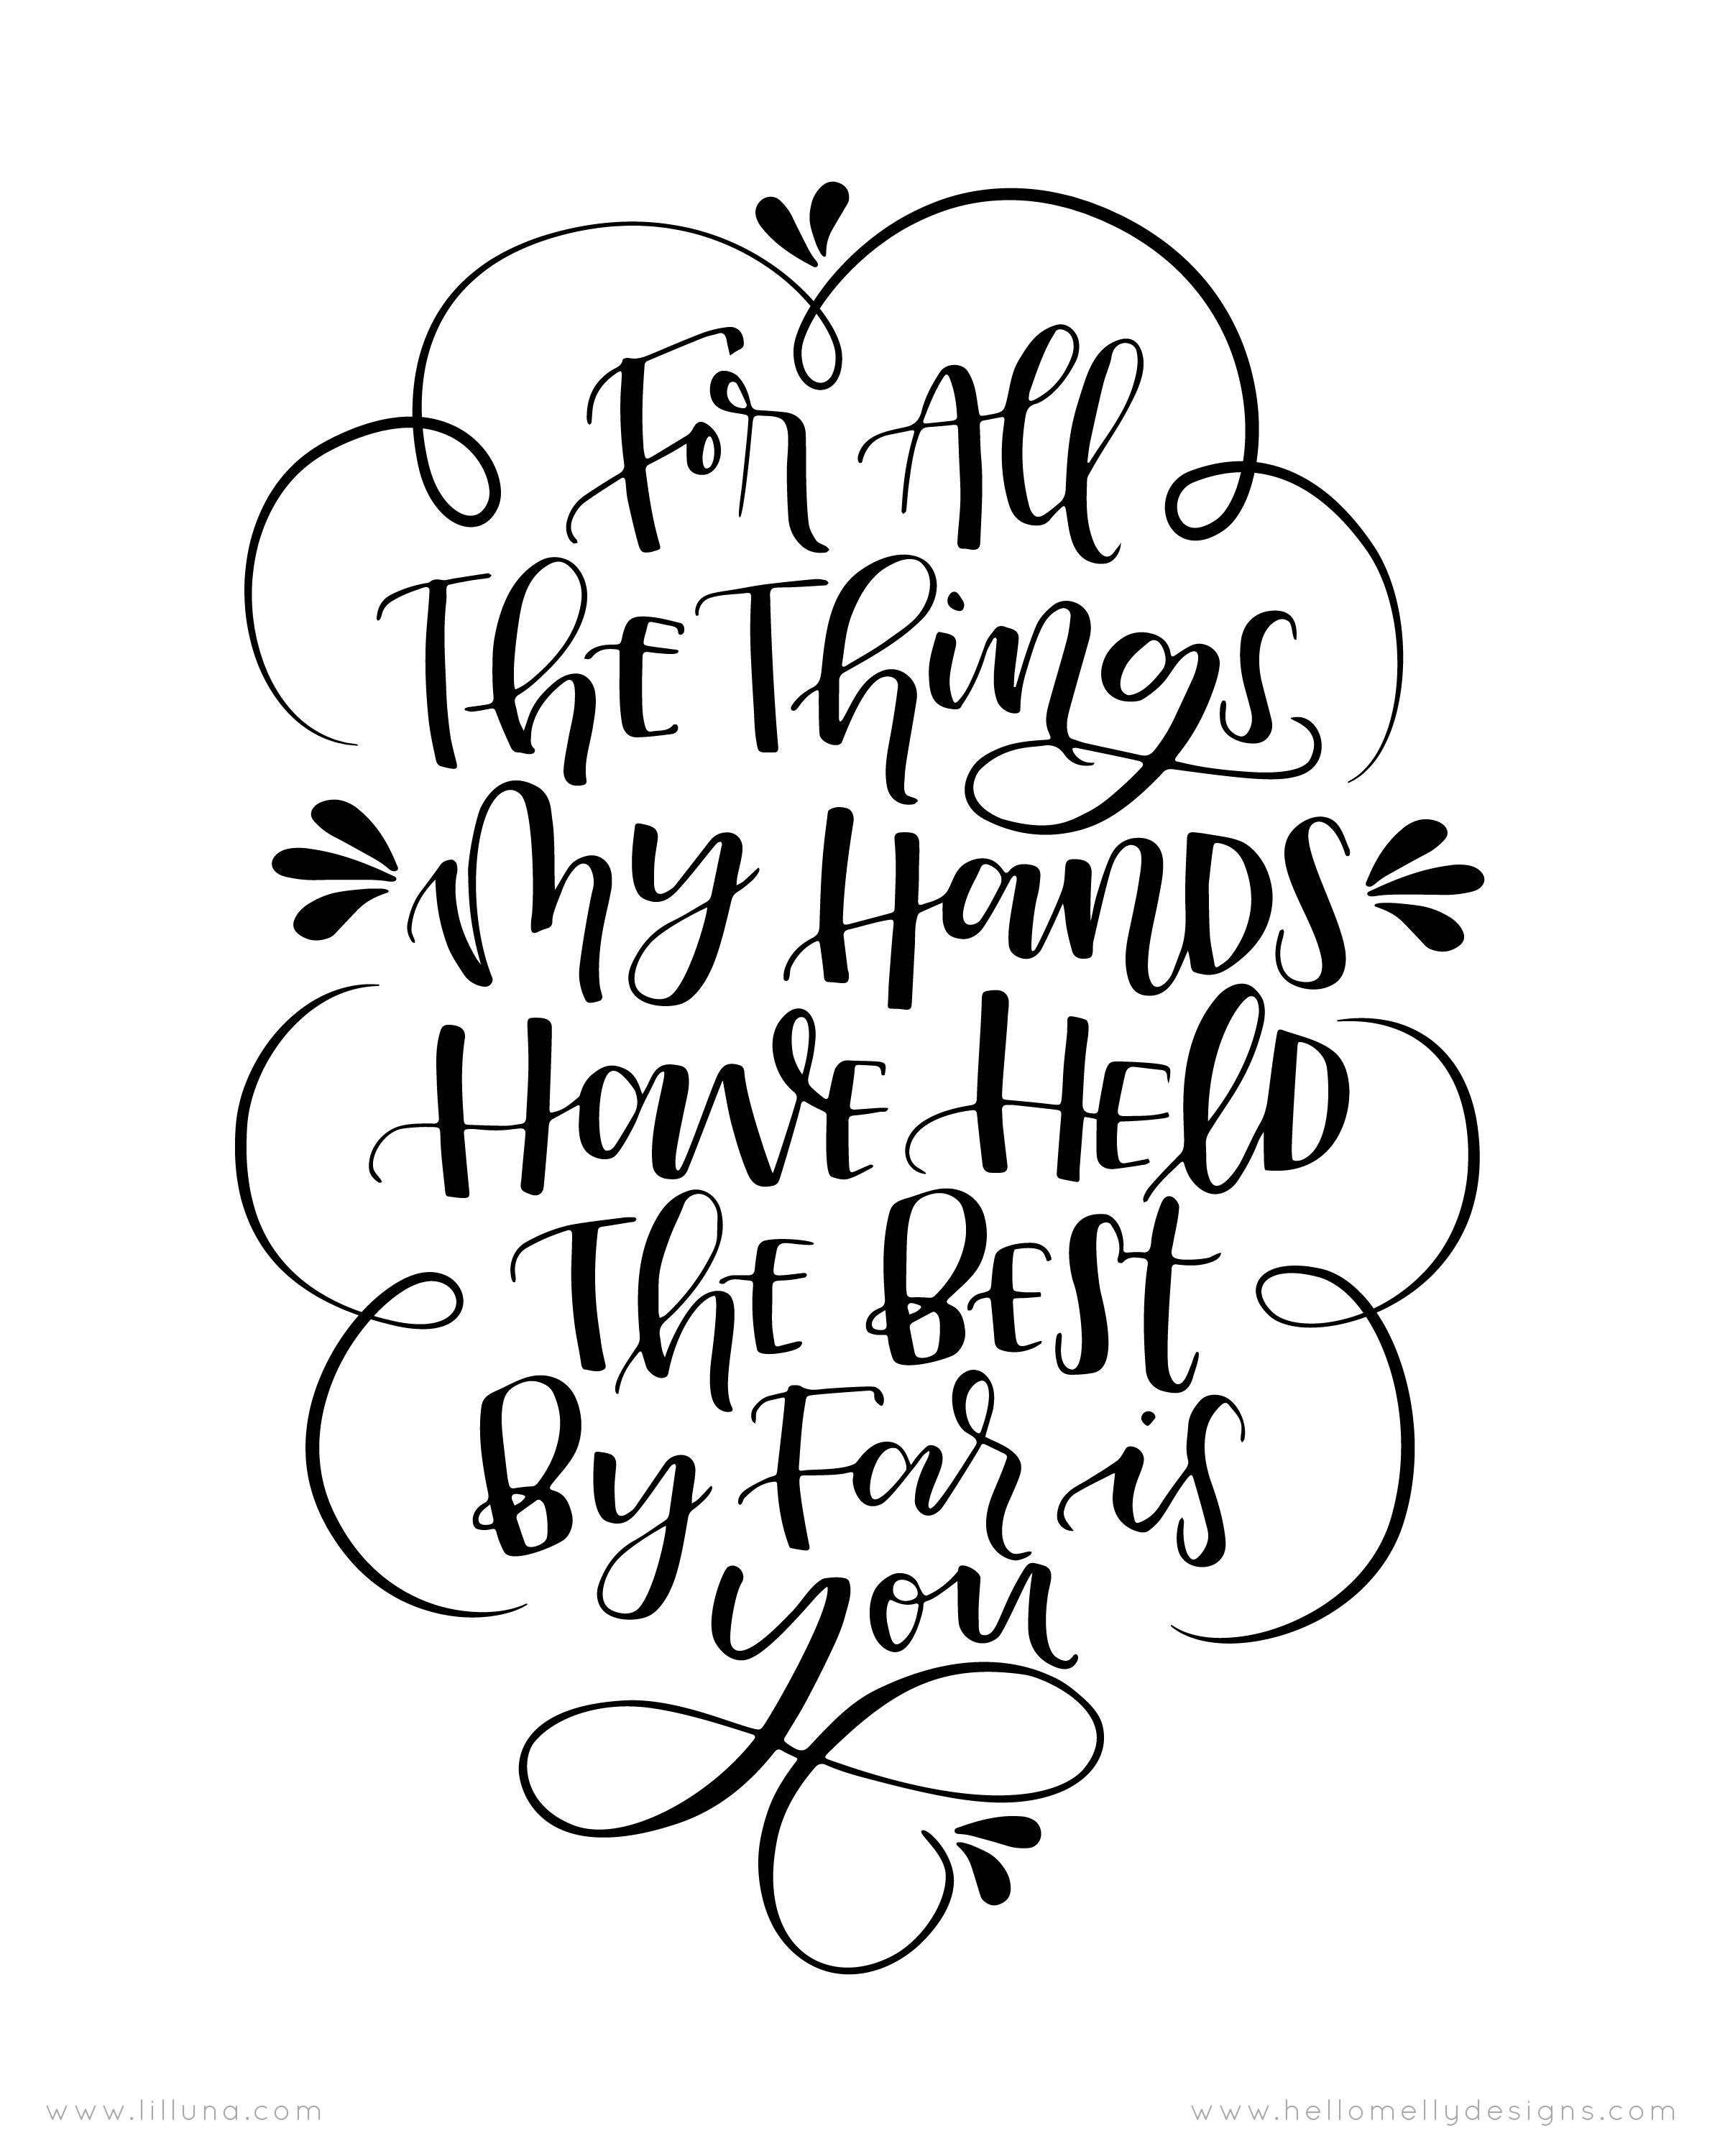 For All The Things My Hands Have Held The Best By Far Is